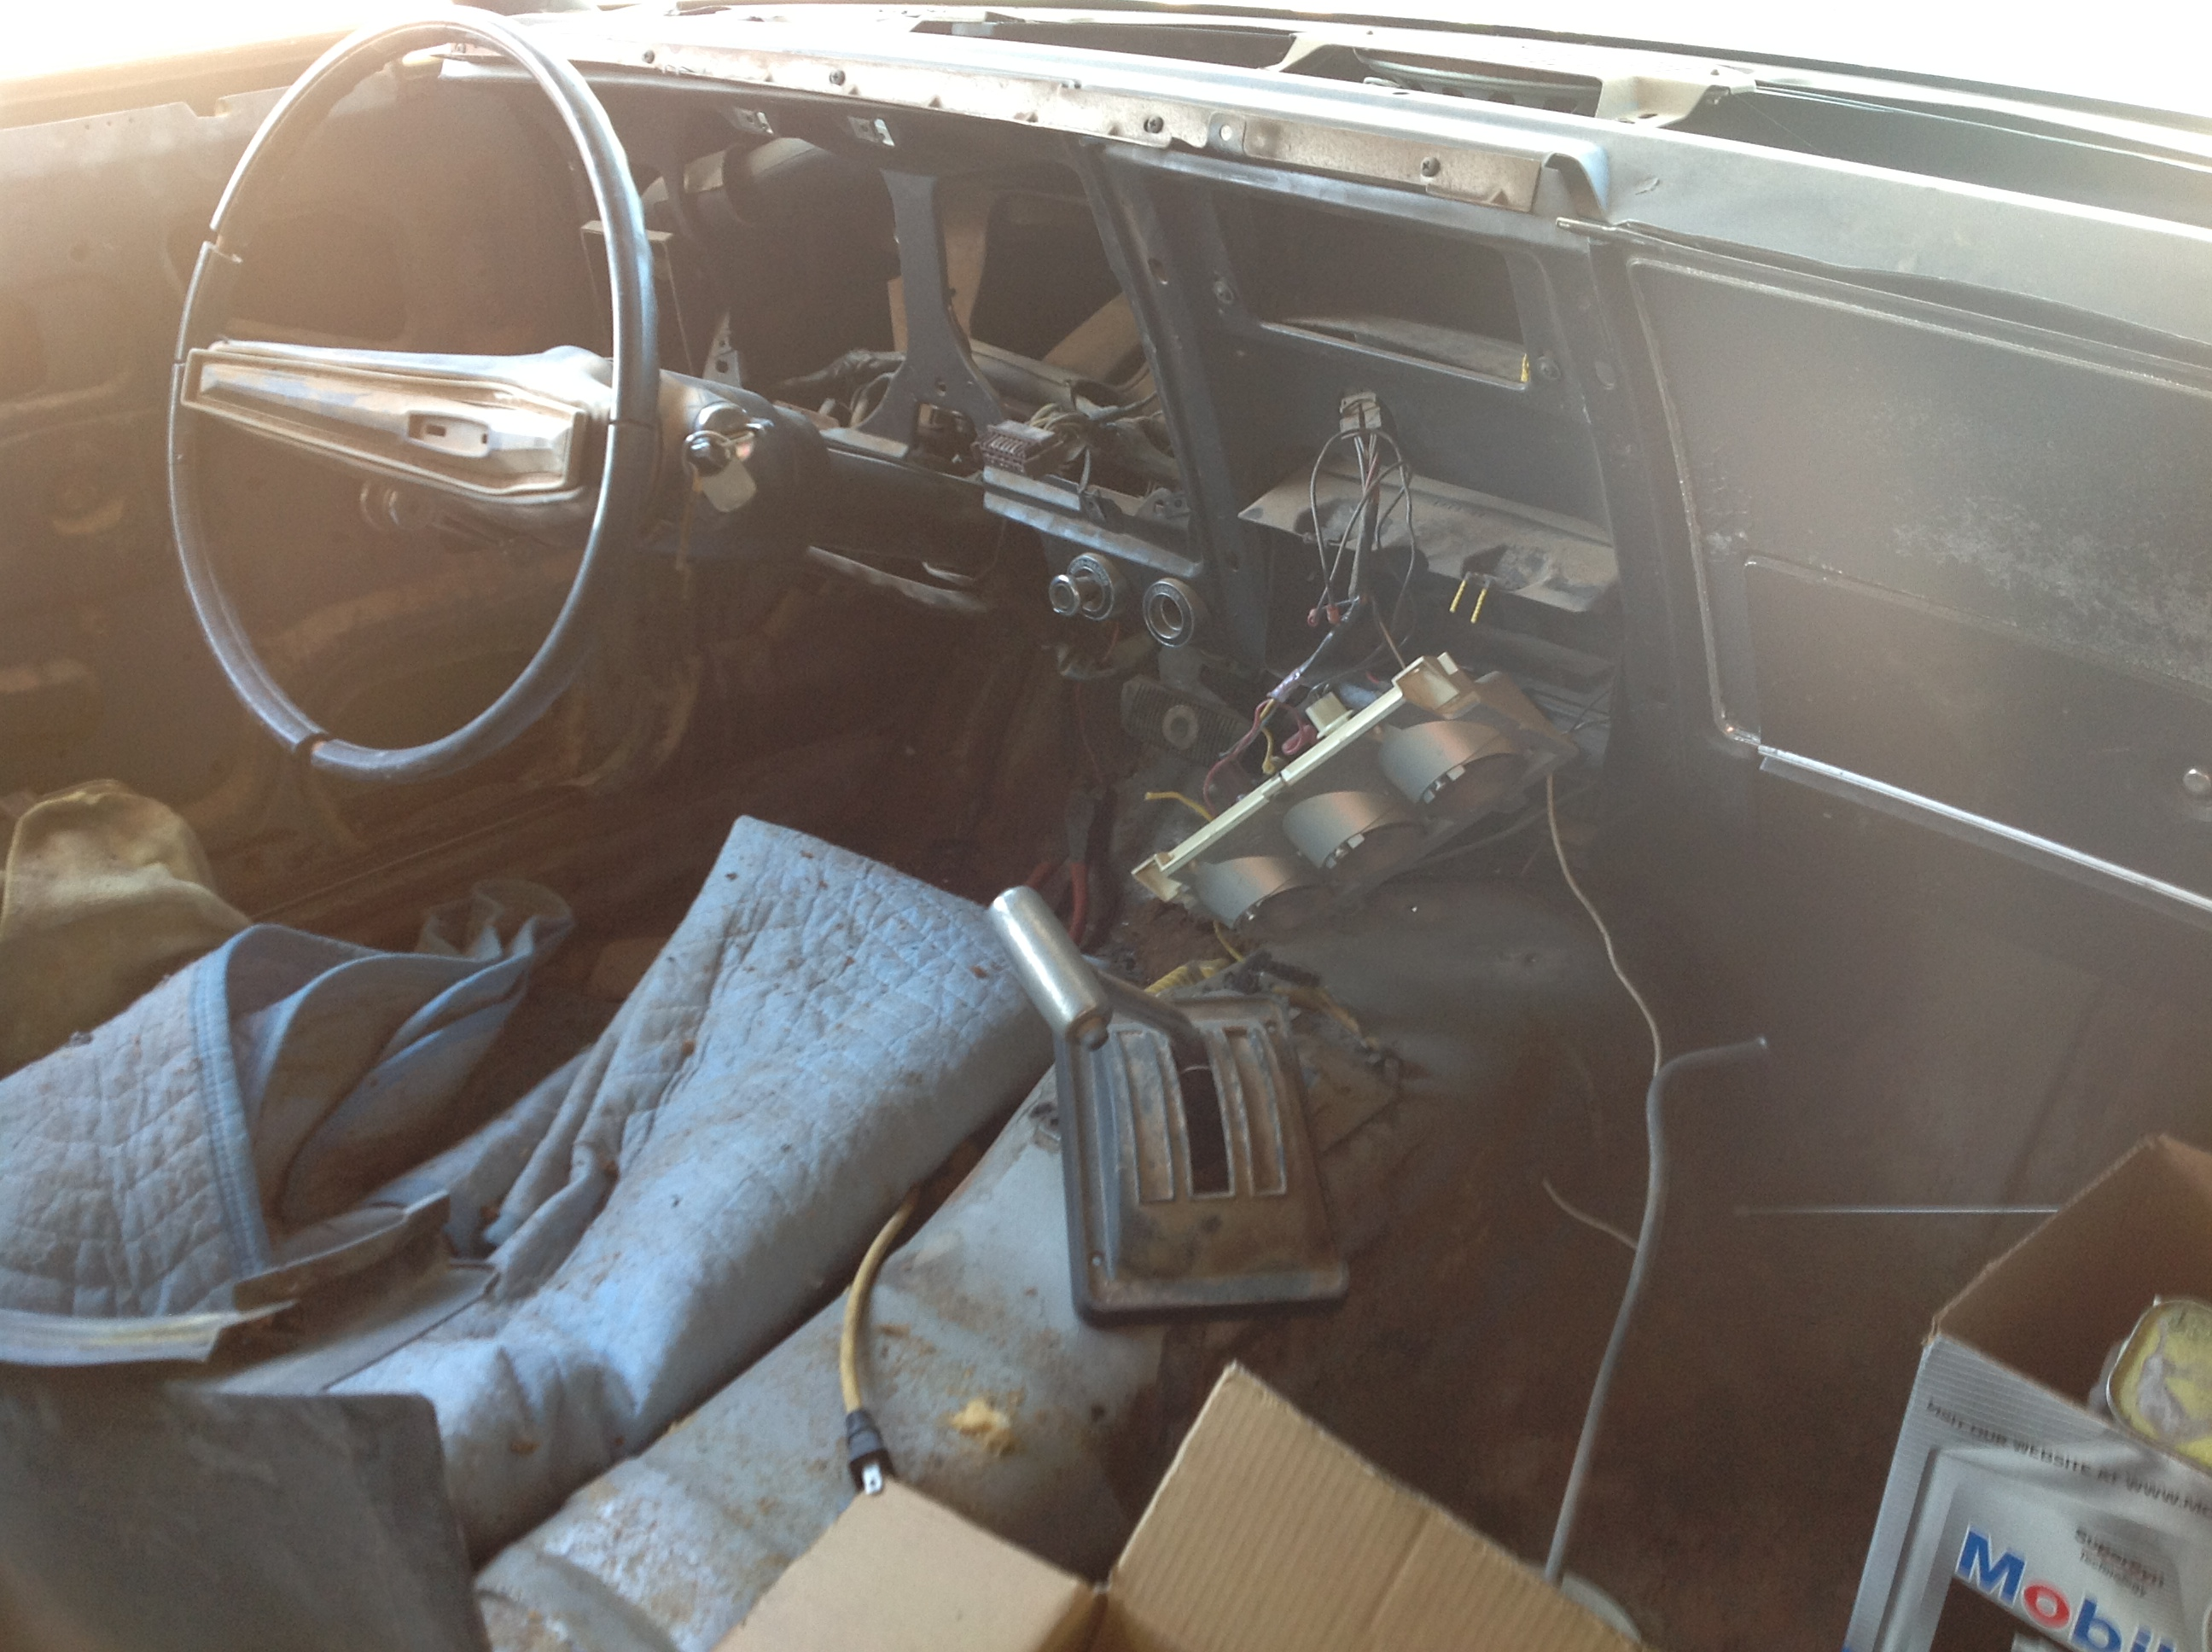 Here is a shot of the interior the day we picked Maxine up. If it is what is inside that counts Maxine was not in good shape